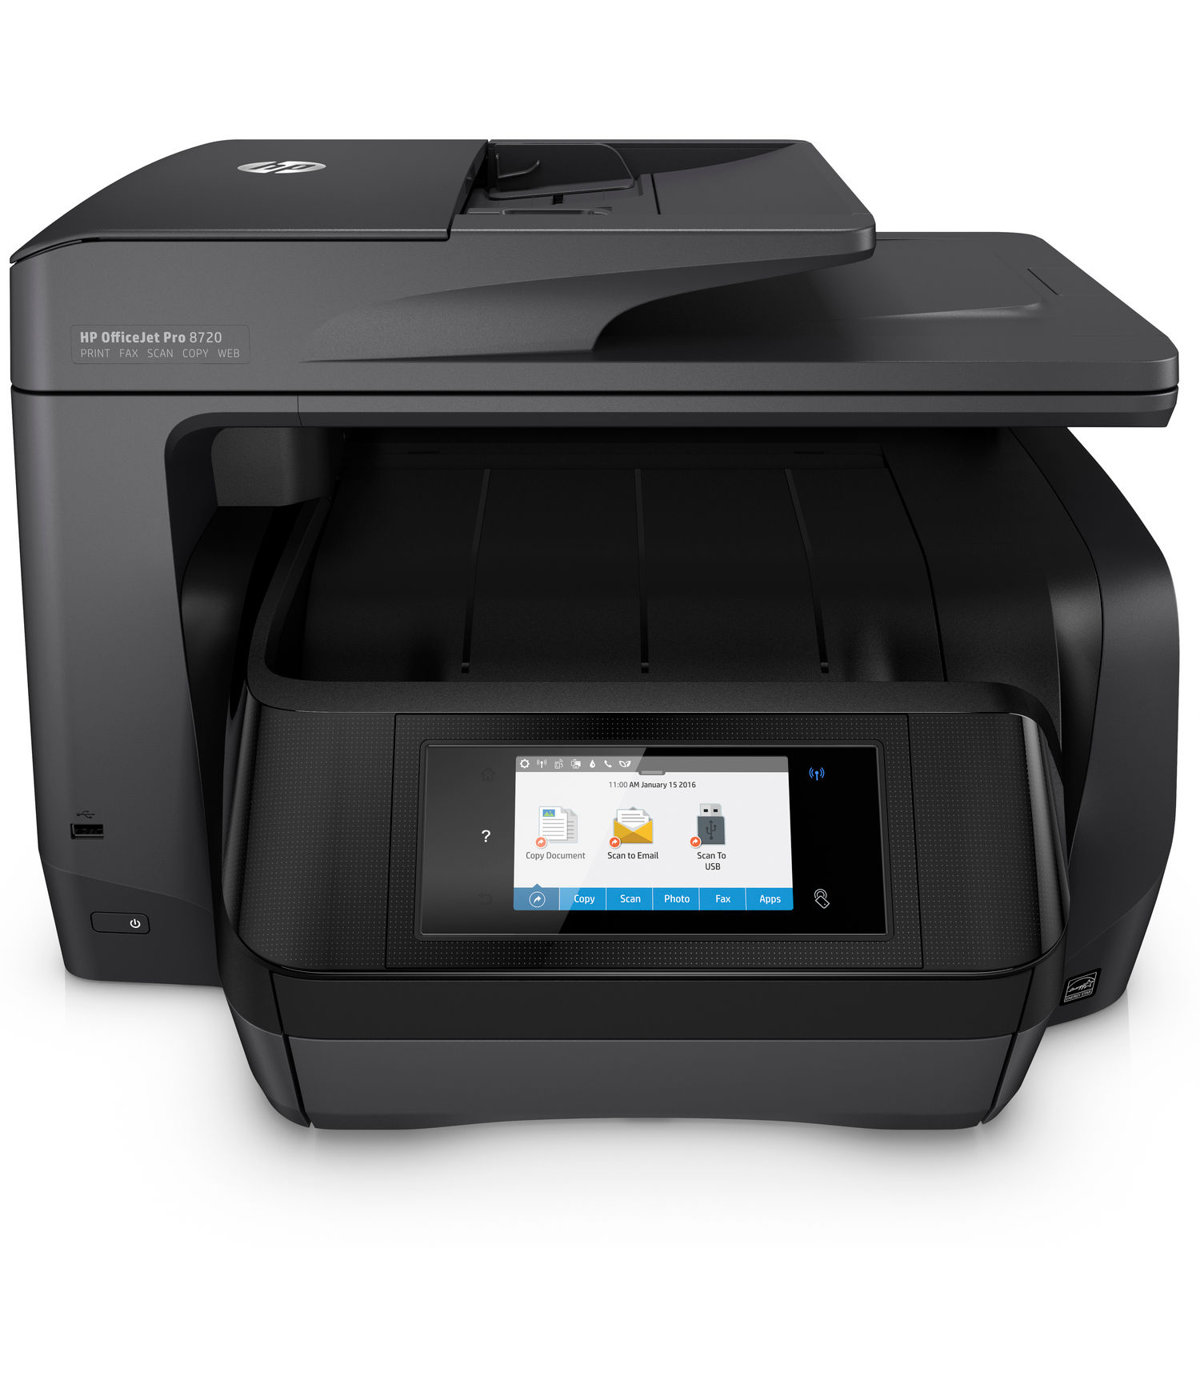 Hp officejet pro 8720 wireless all in one printer with mobile hp officejet pro 8720 wireless all in one printer with mobile printing black m9l74a by office depot officemax reheart Choice Image